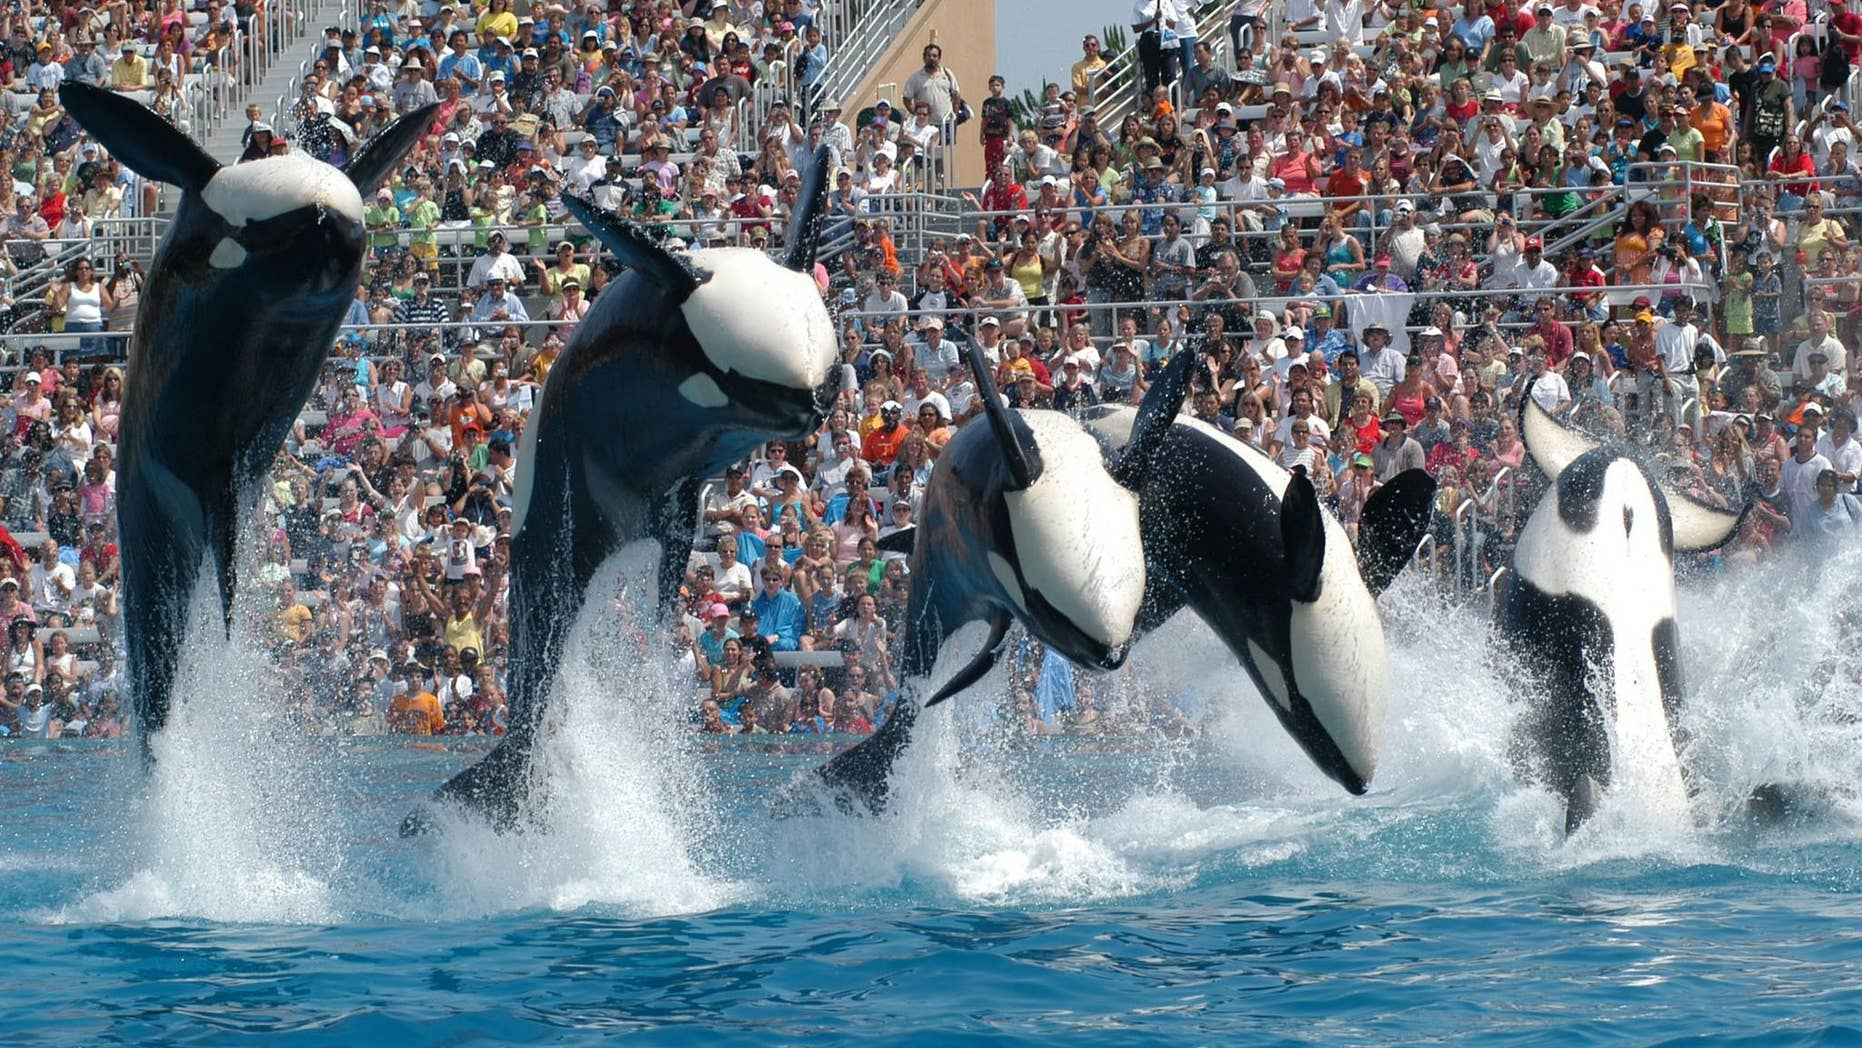 SeaWorld has reported declining attendance rates after receiving negative backlash over the documentary 'Blackfish.'